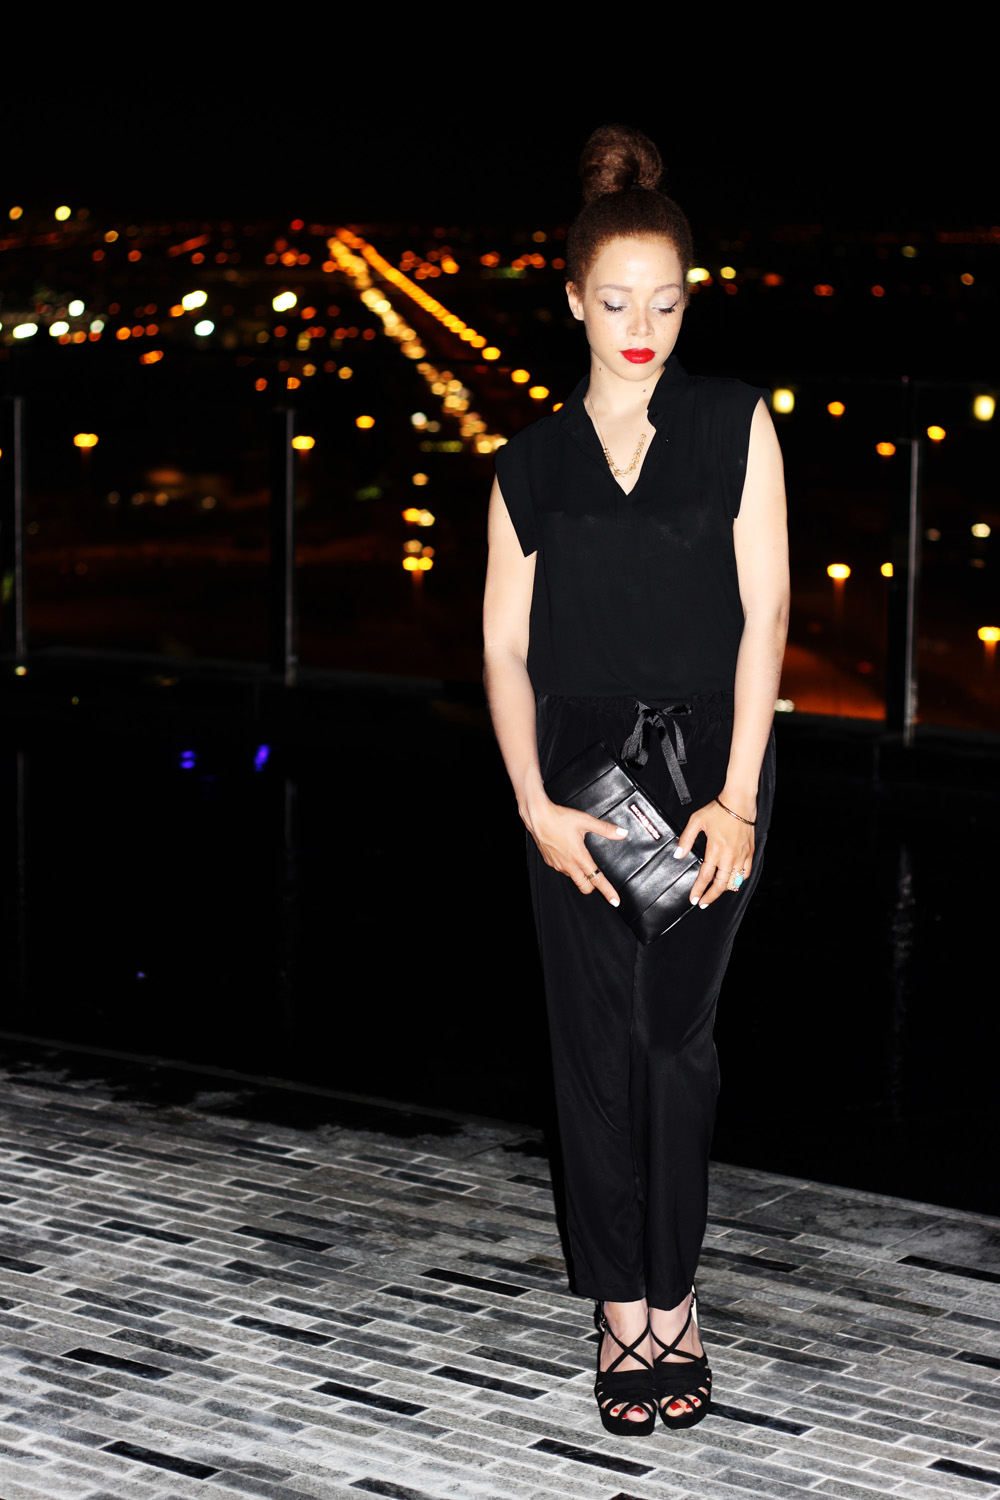 fatimayarie-black-blouse-leatherclutch-dubai-fashionblog-img_4192